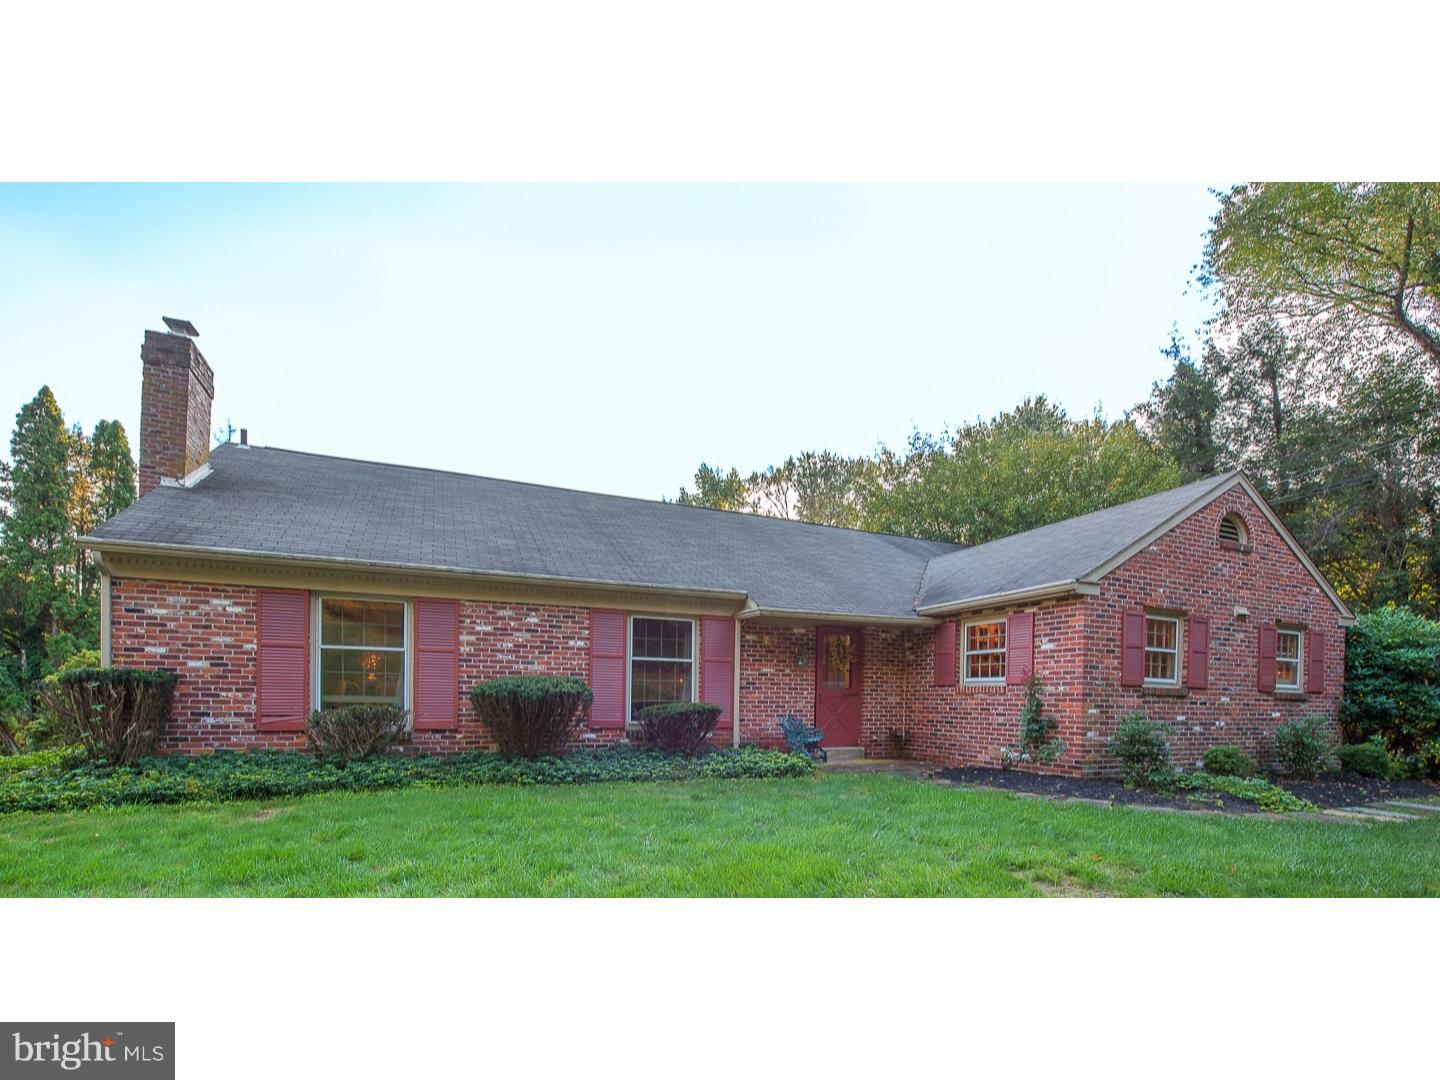 710 Darby Paoli Road Newtown Square, PA 19073